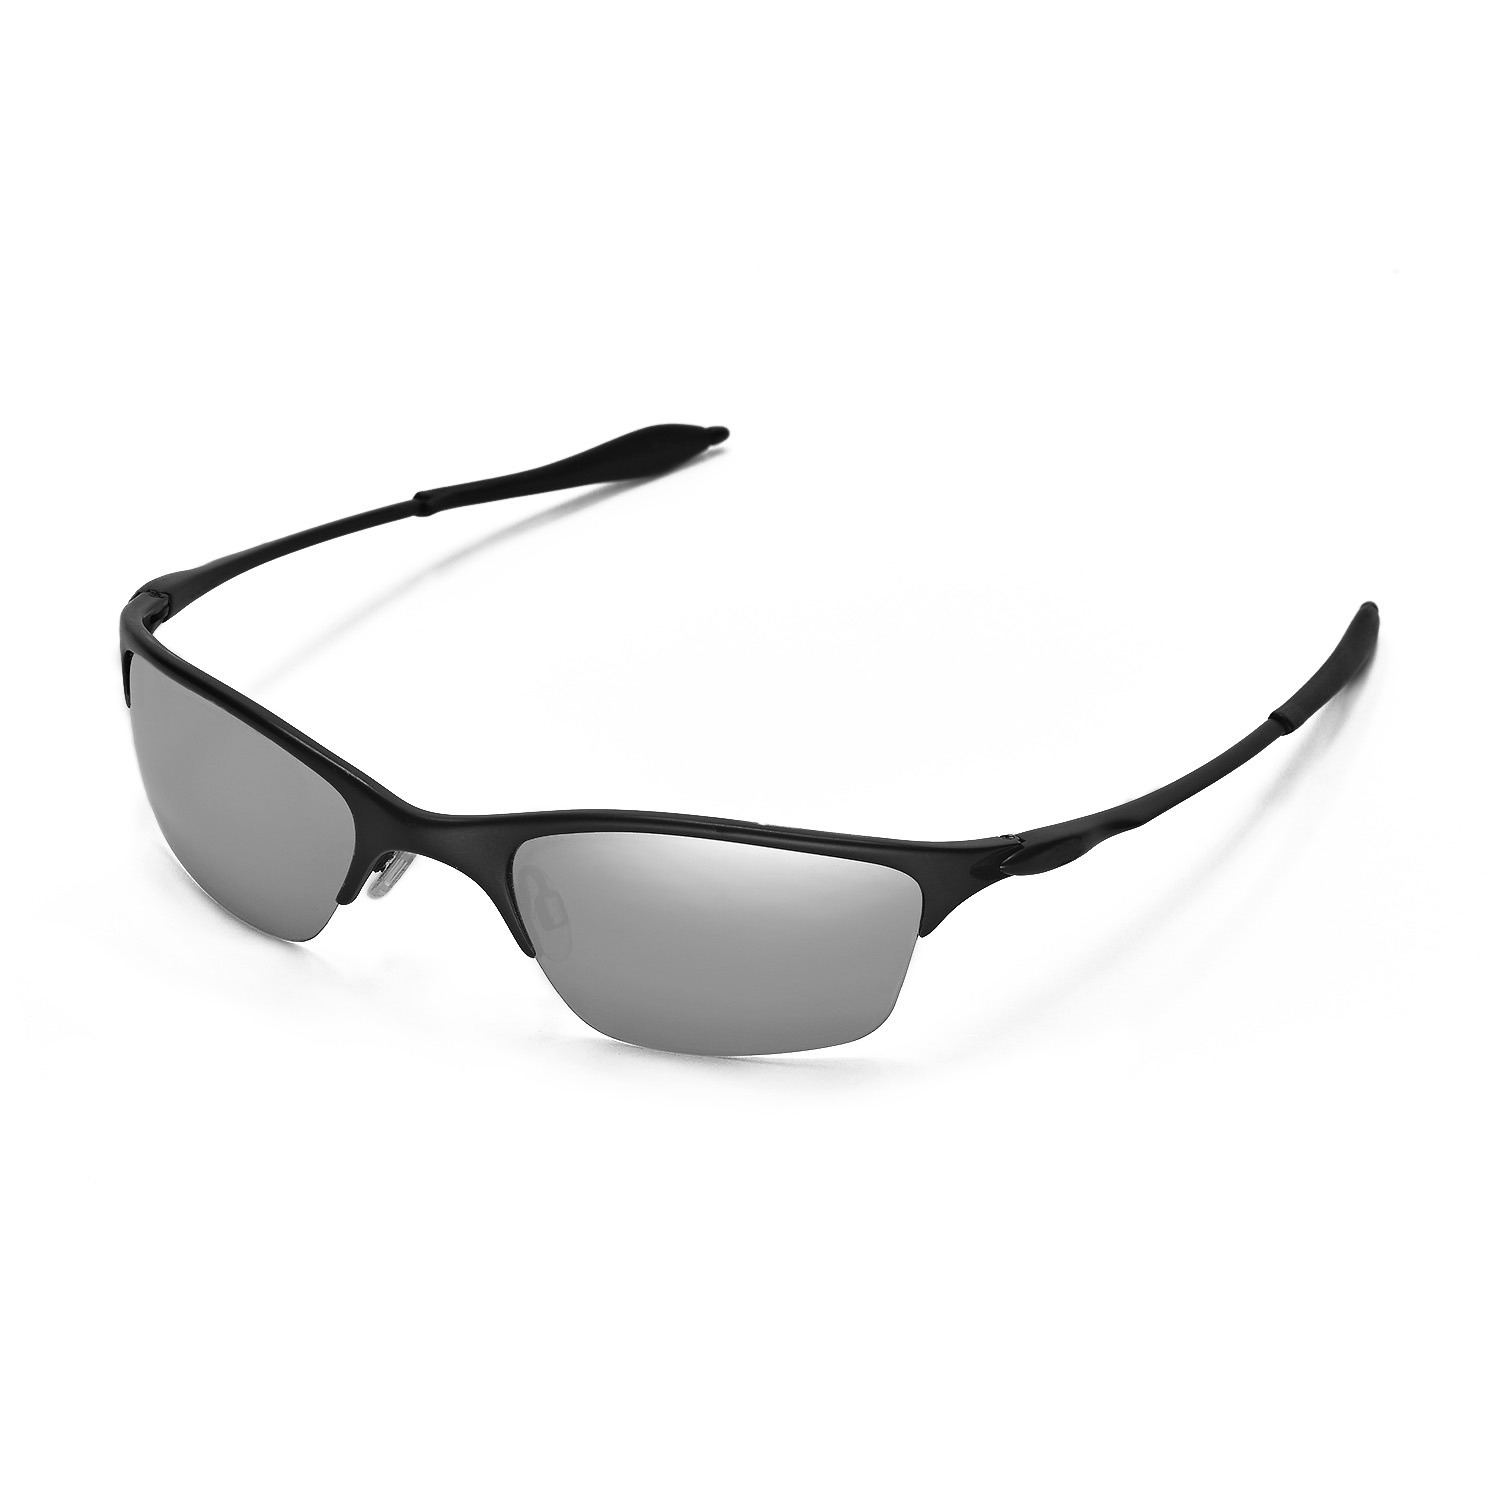 71b61184419 Oakley Half Wire Xl Sunglasses